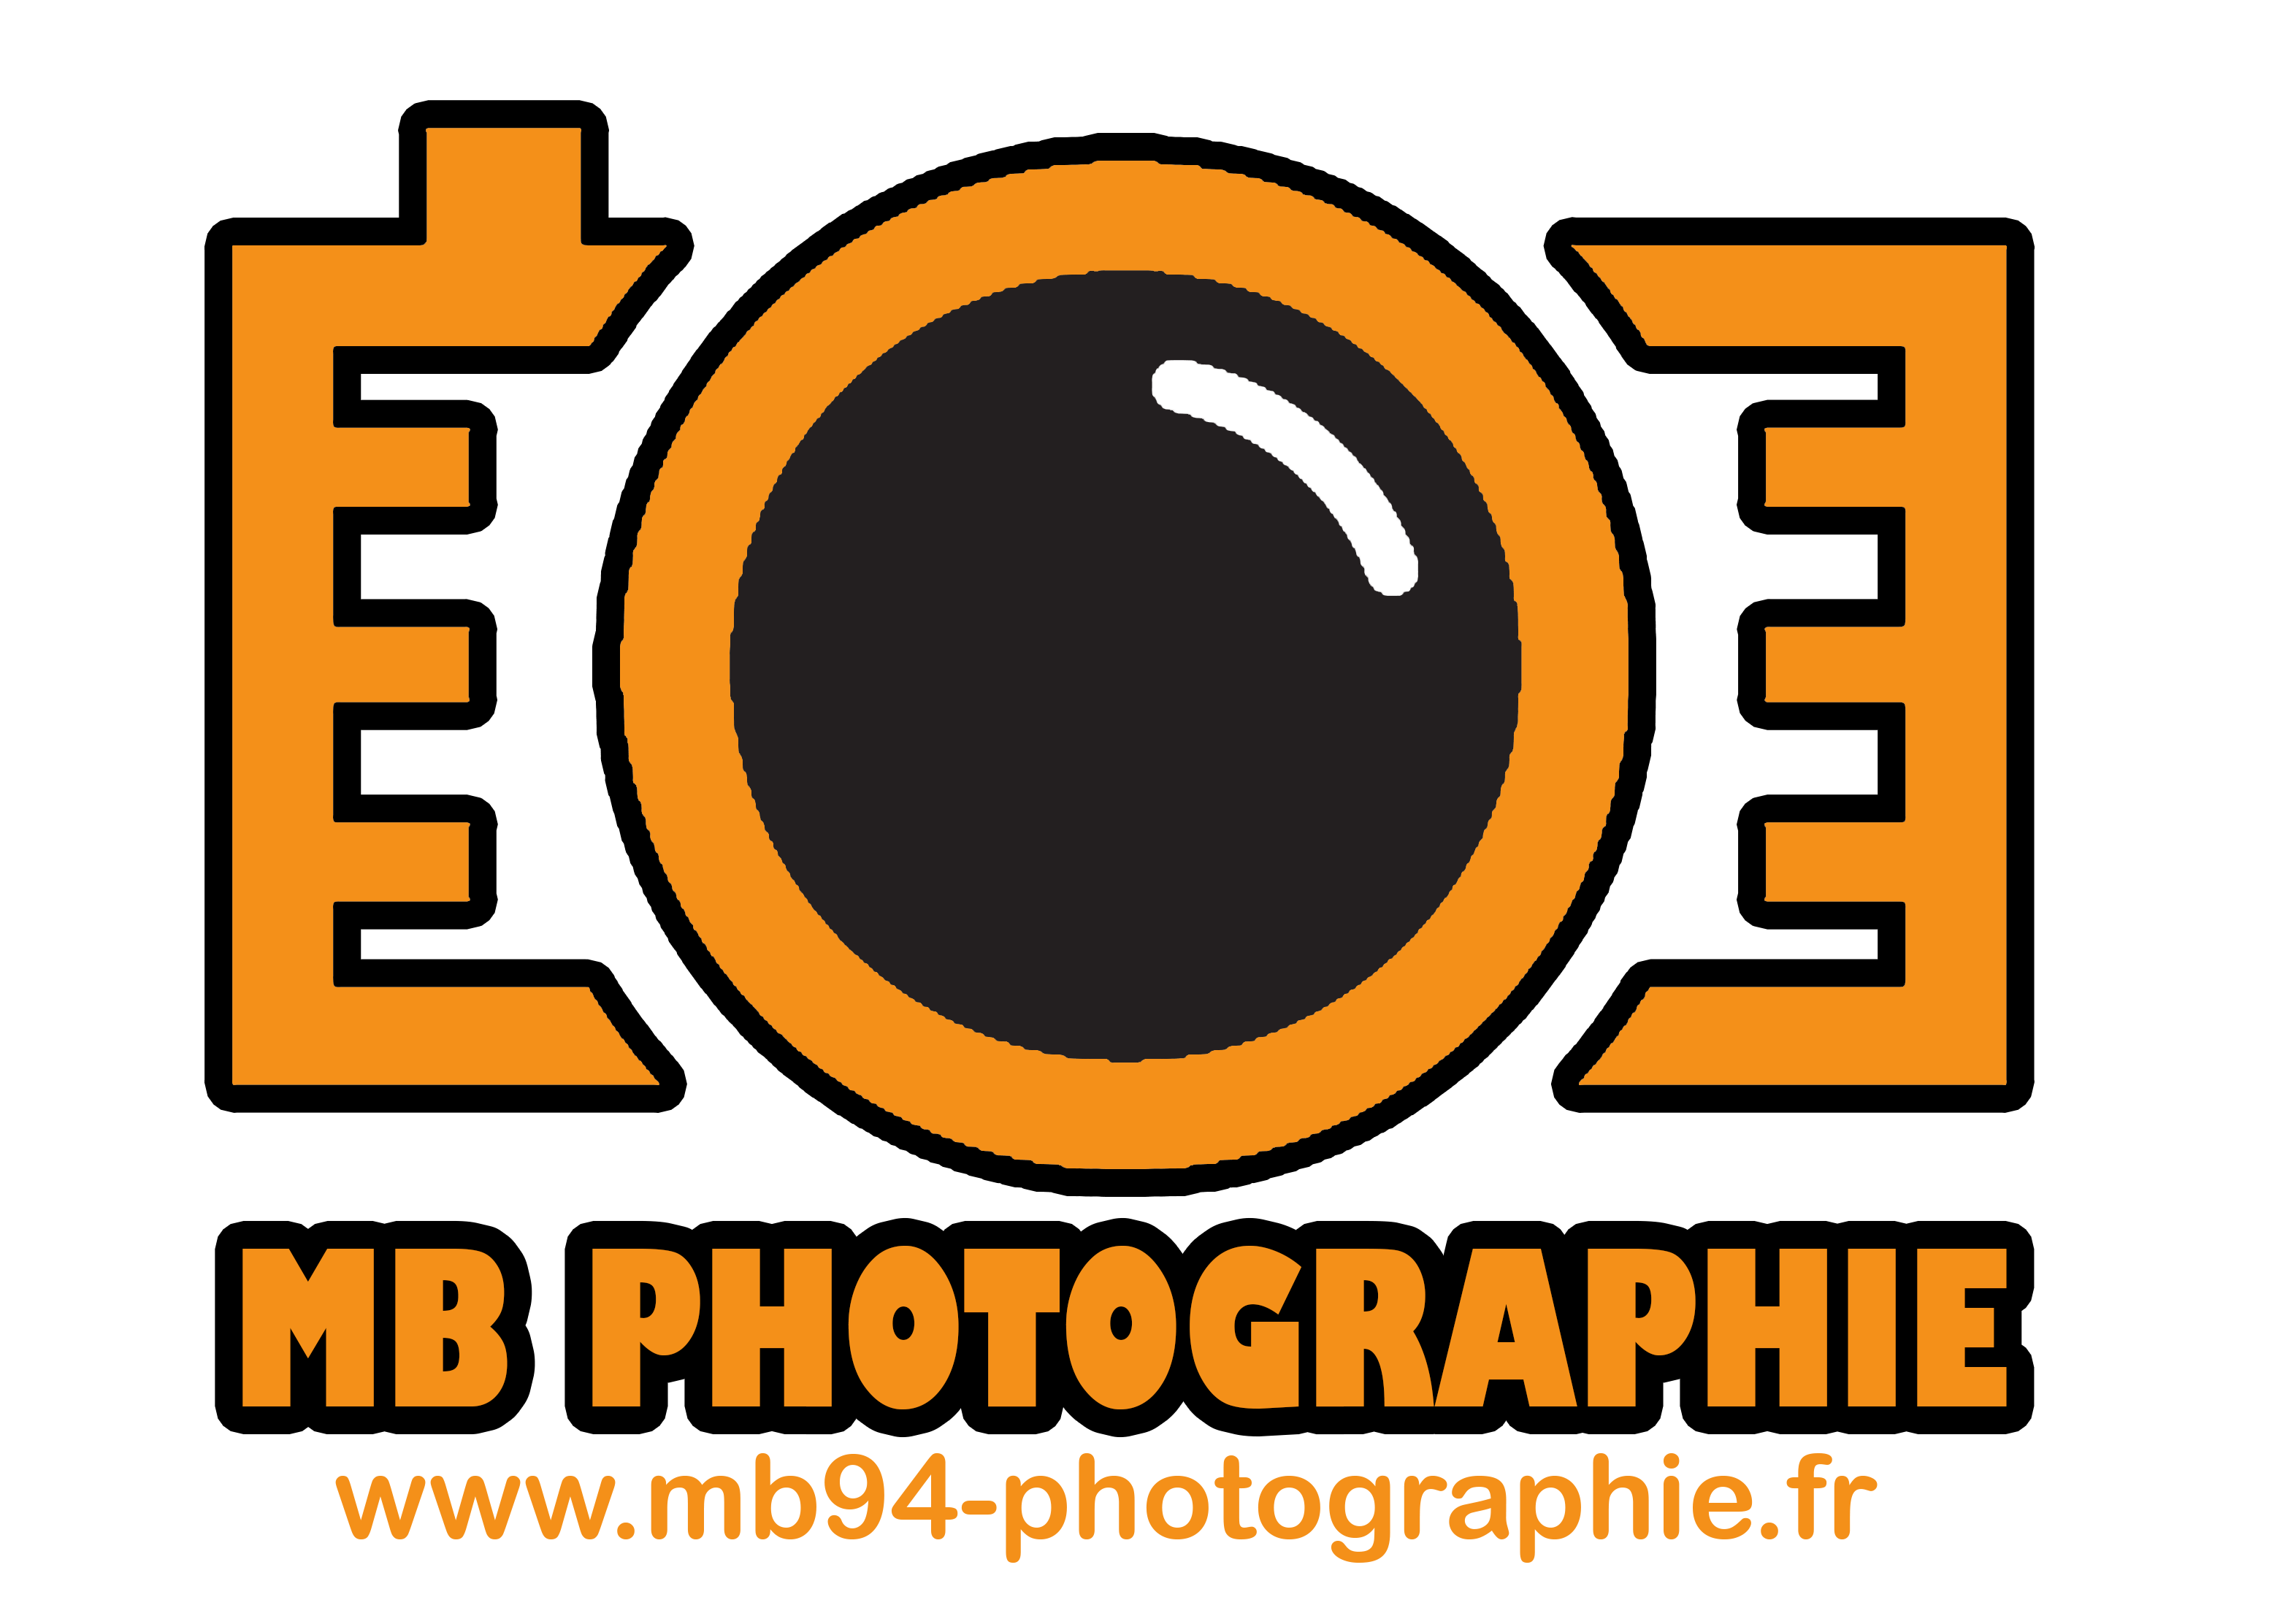 MB Photographie